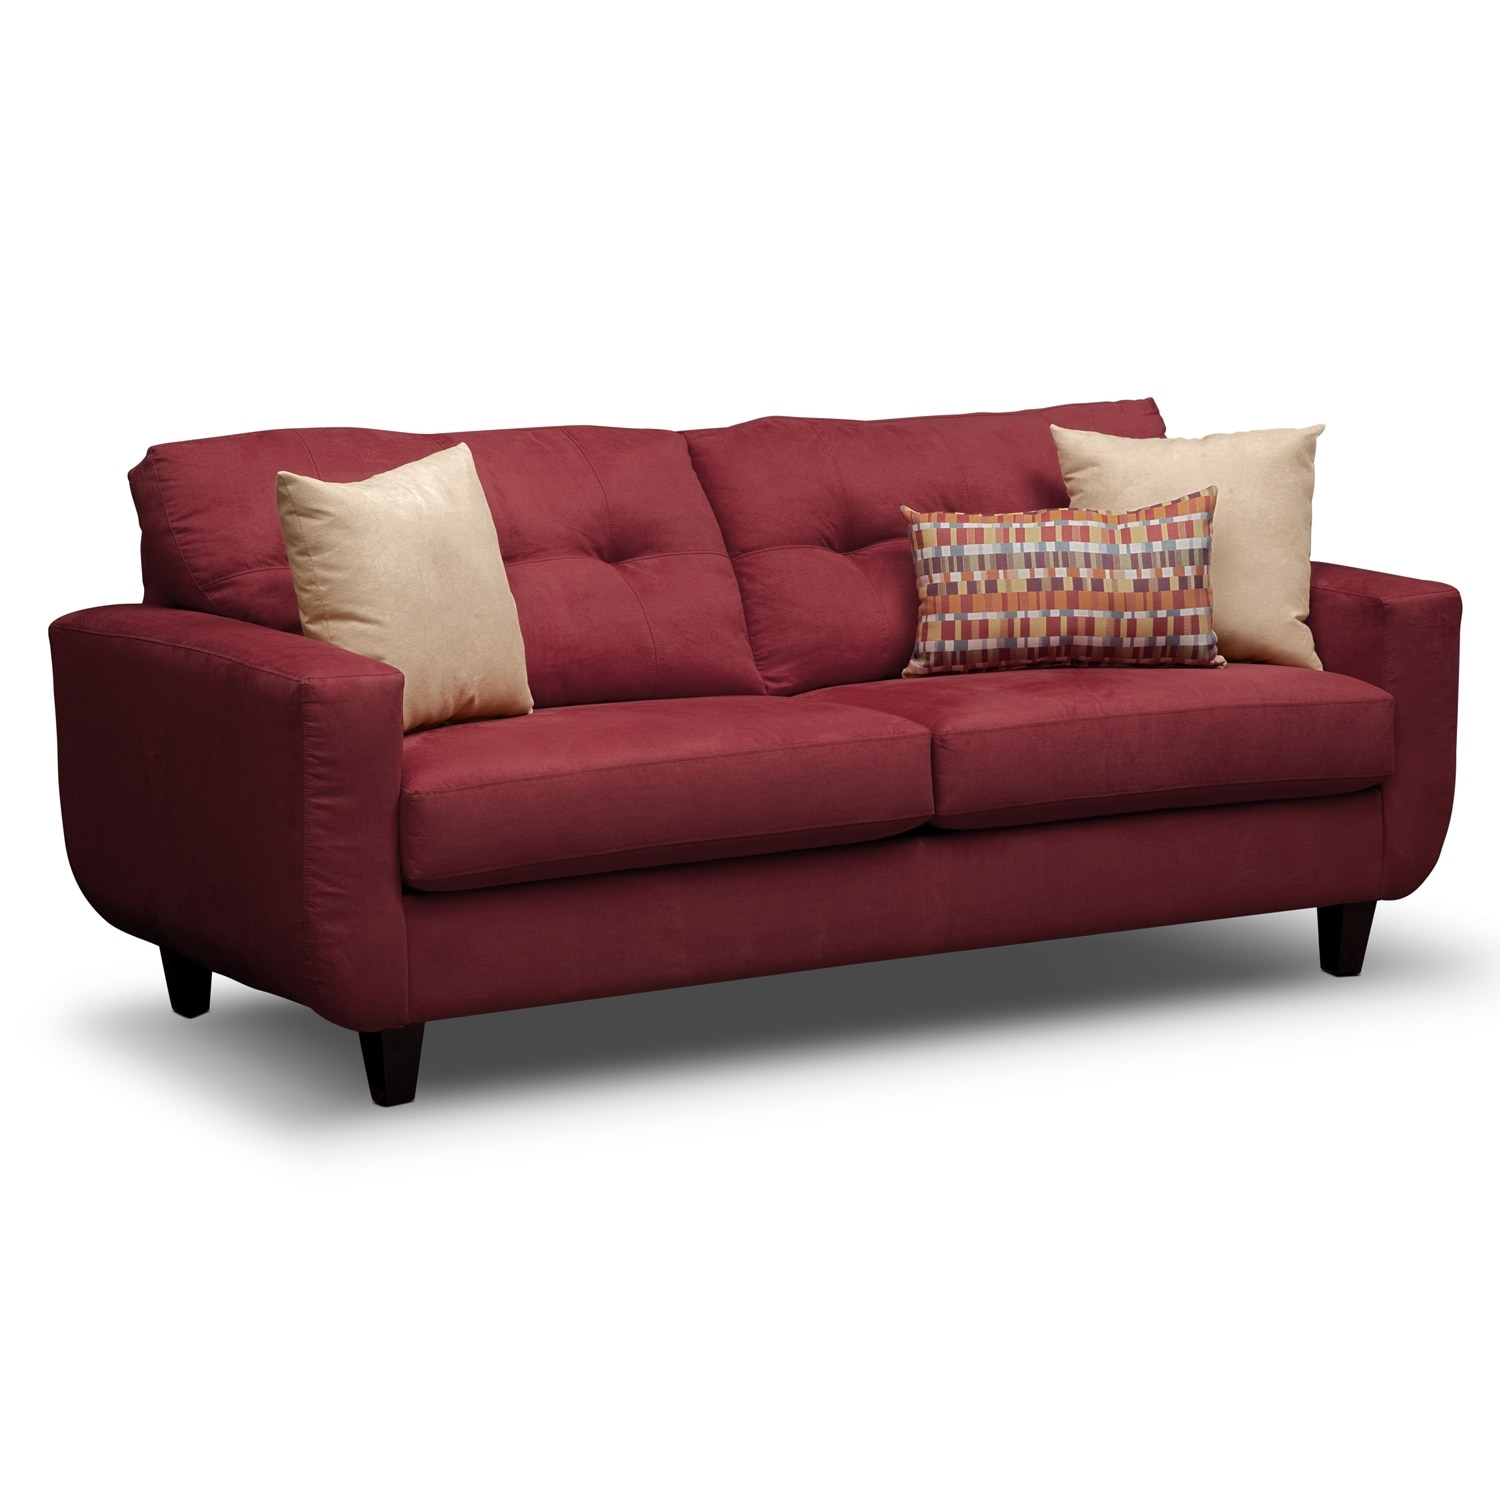 Living Room Furniture - West Village Red Sofa